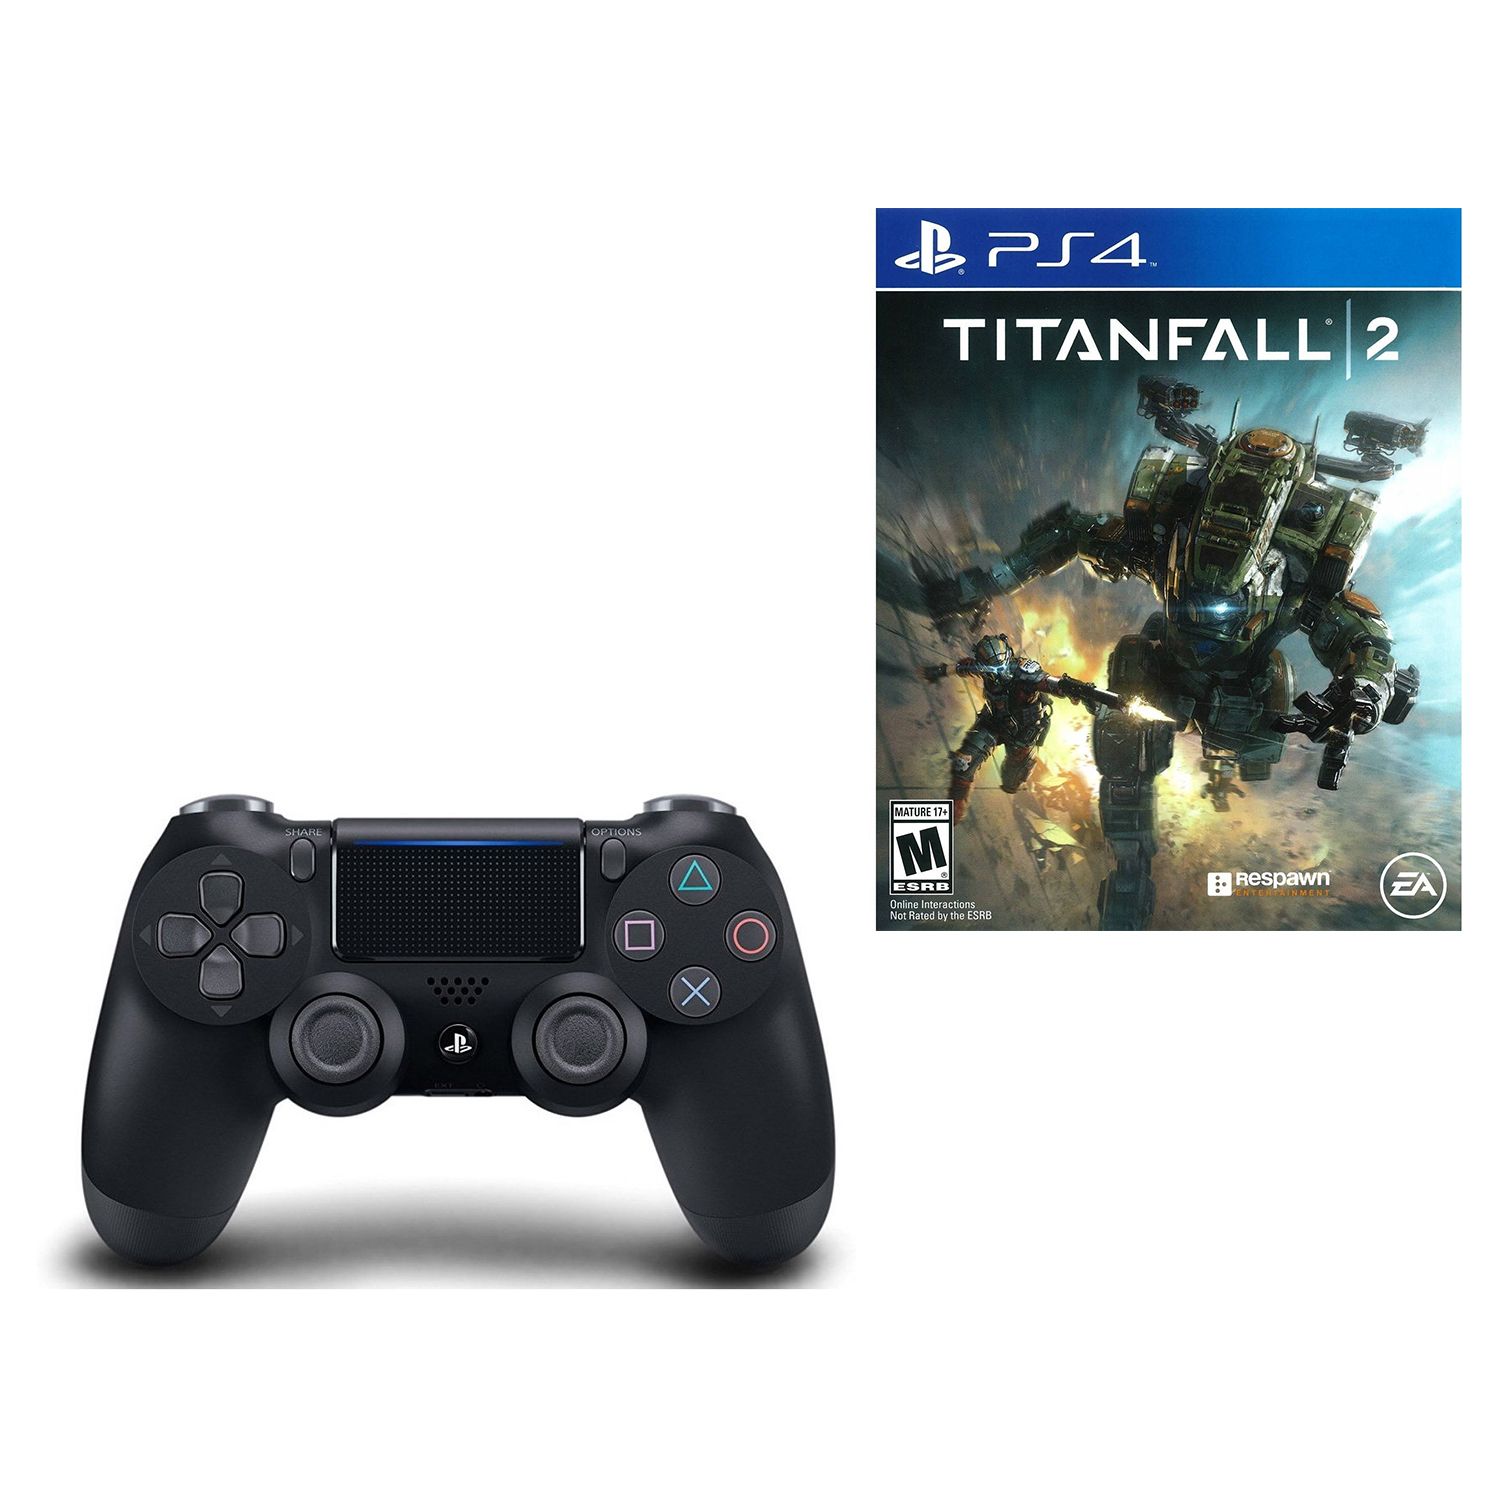 PlayStation 4 DualShock 4 Wireless Controller Black and Titanfall 2 Video Game by Sony